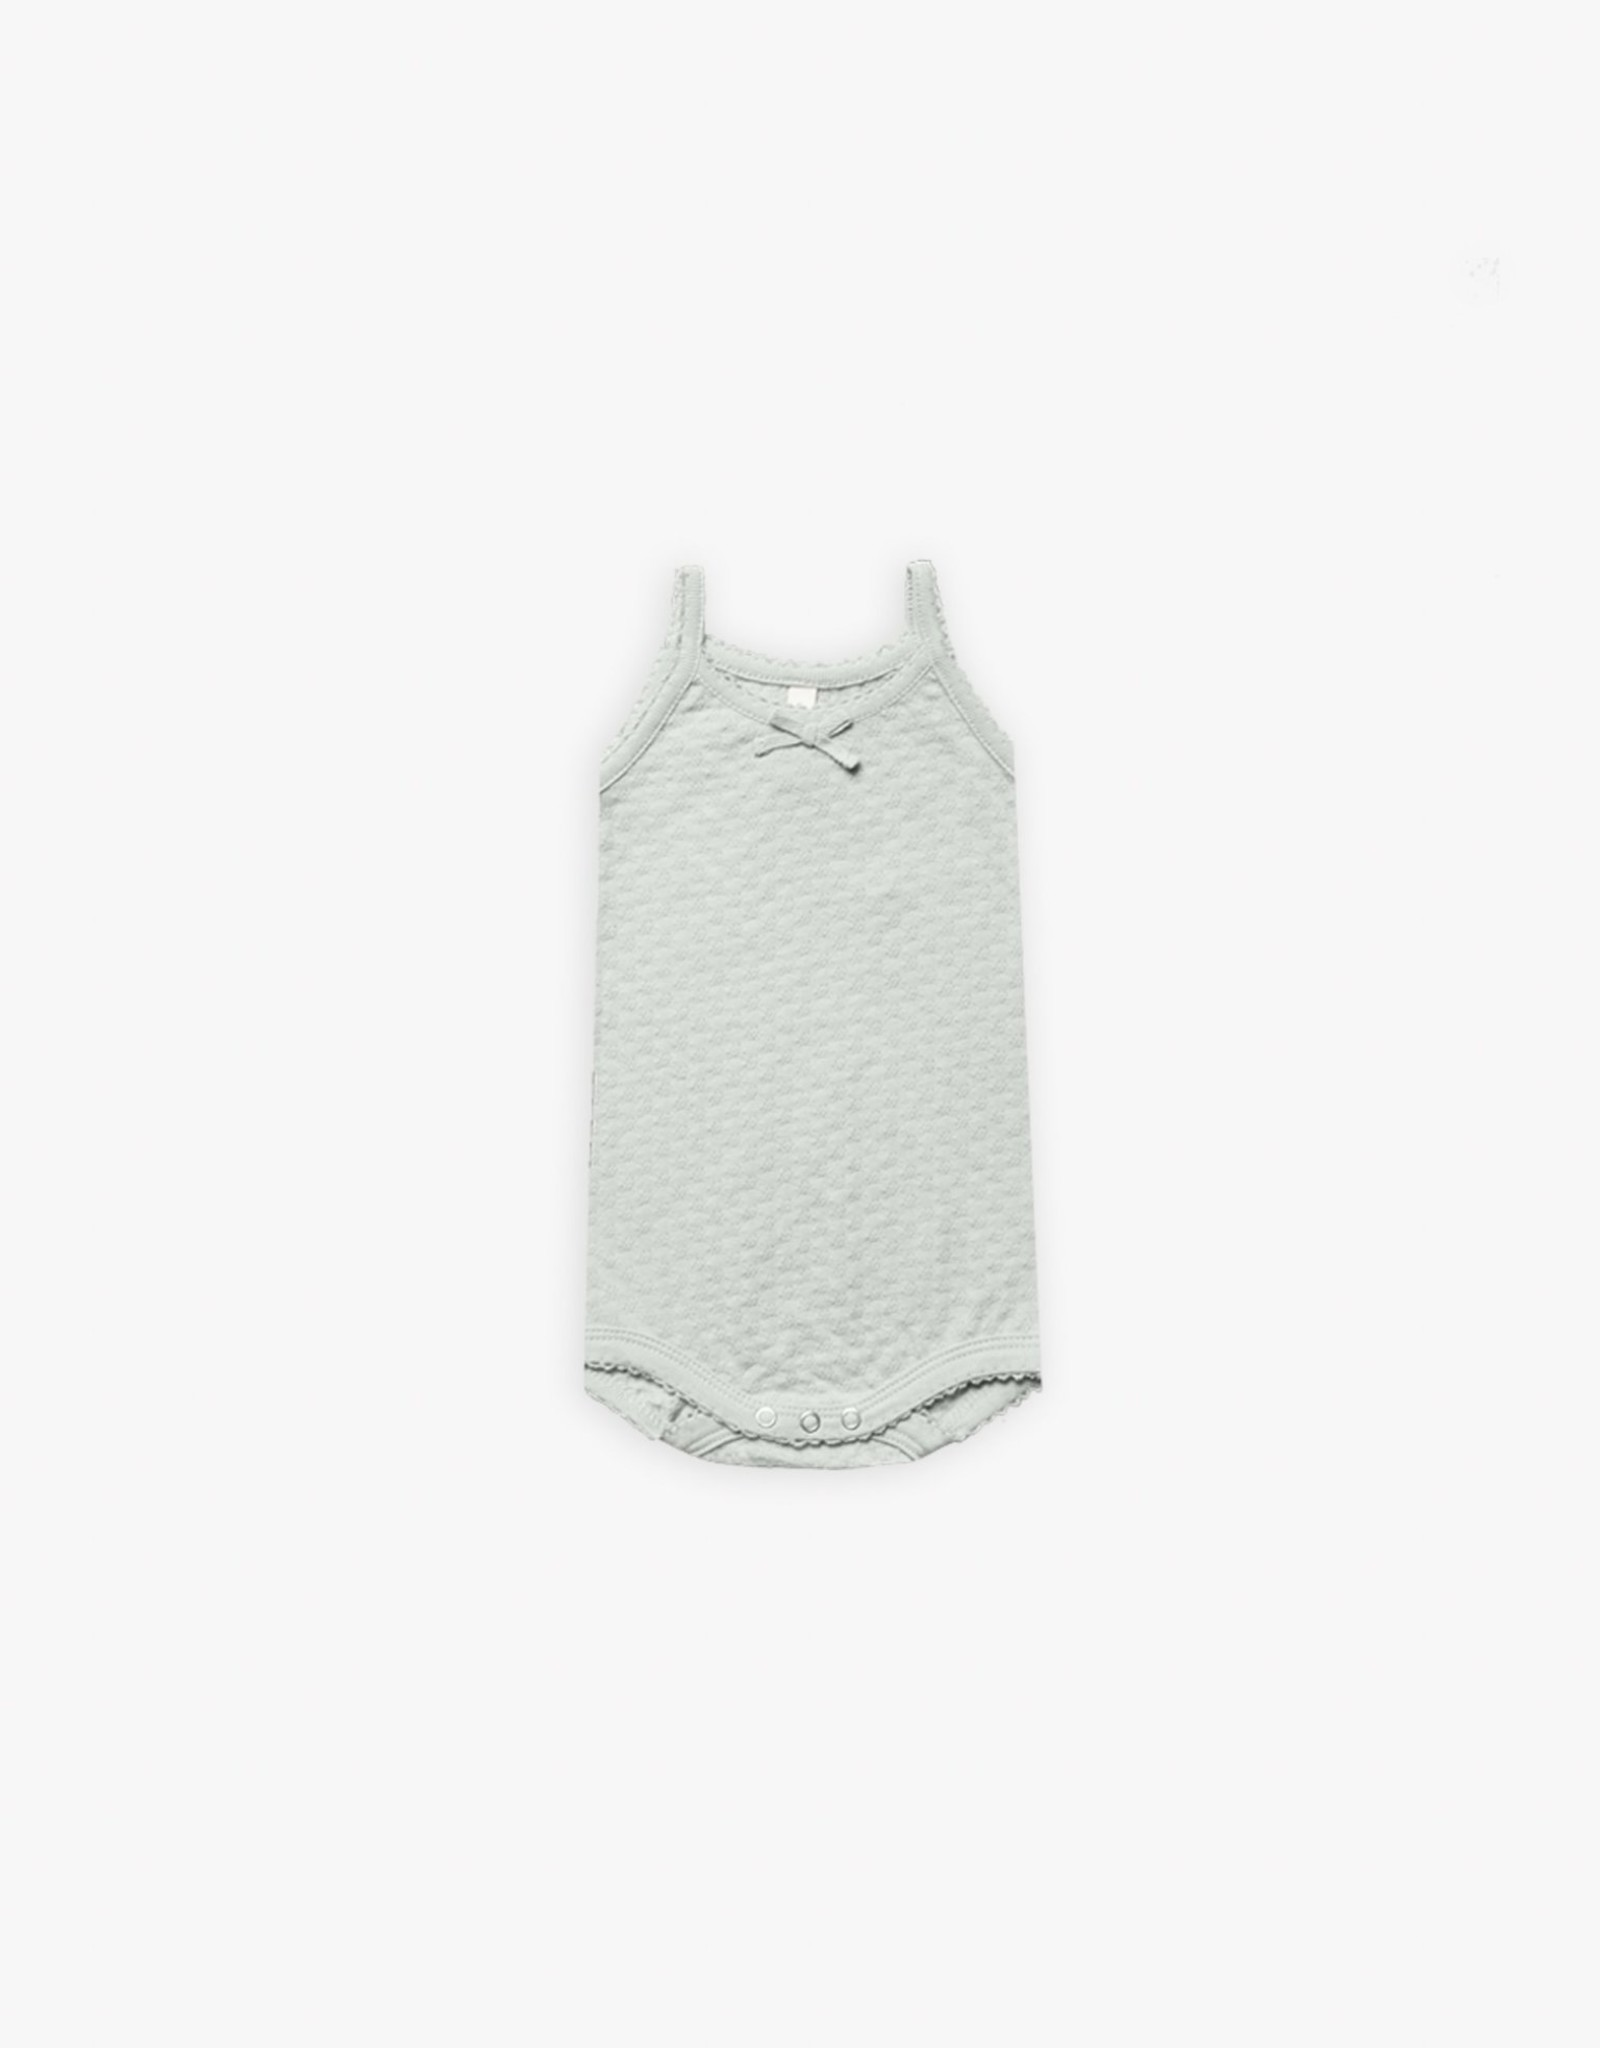 Quincy Mae Quincy Mae Pointelle Tank Onesie